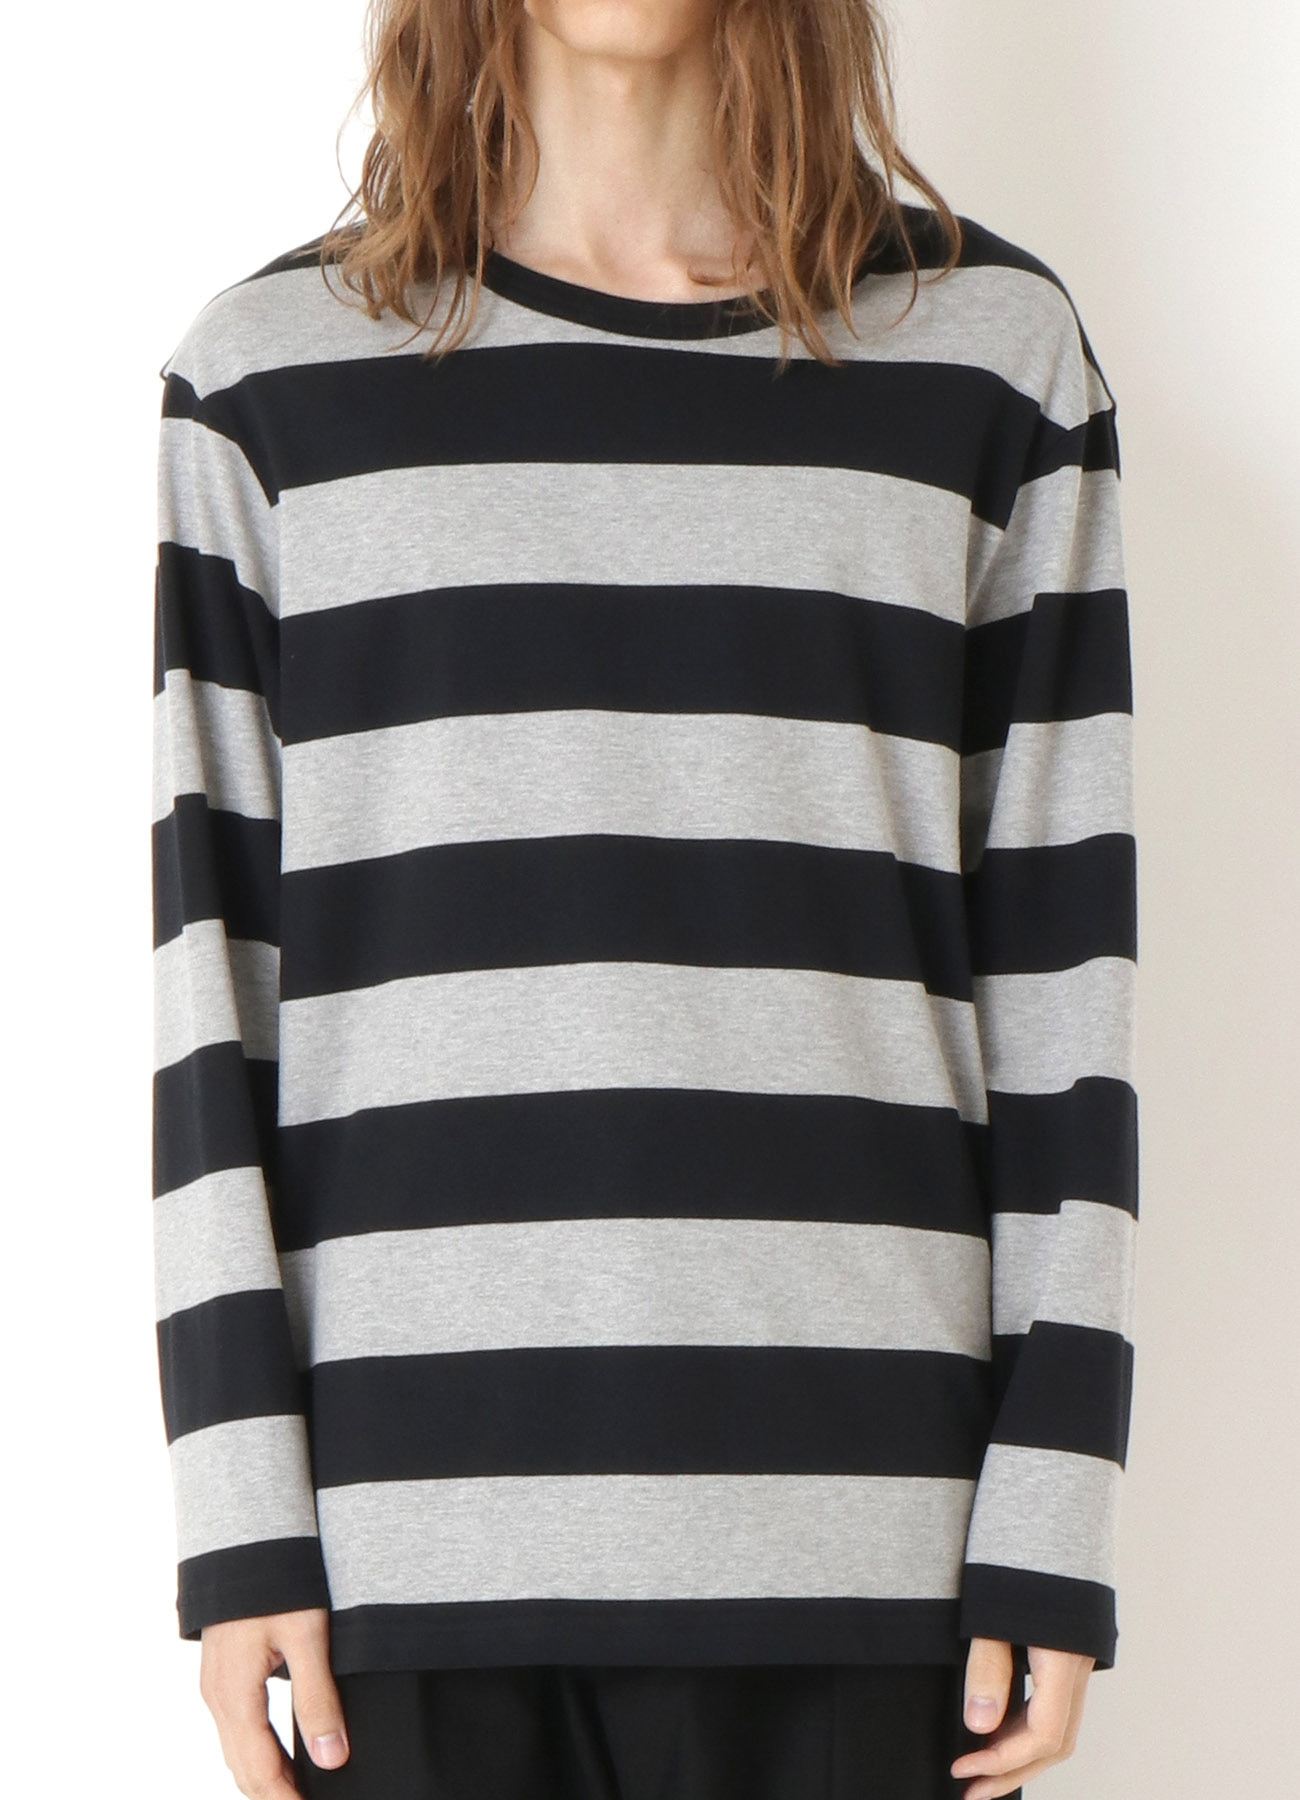 REGULATION BORDER THICK LONG SLEEVES